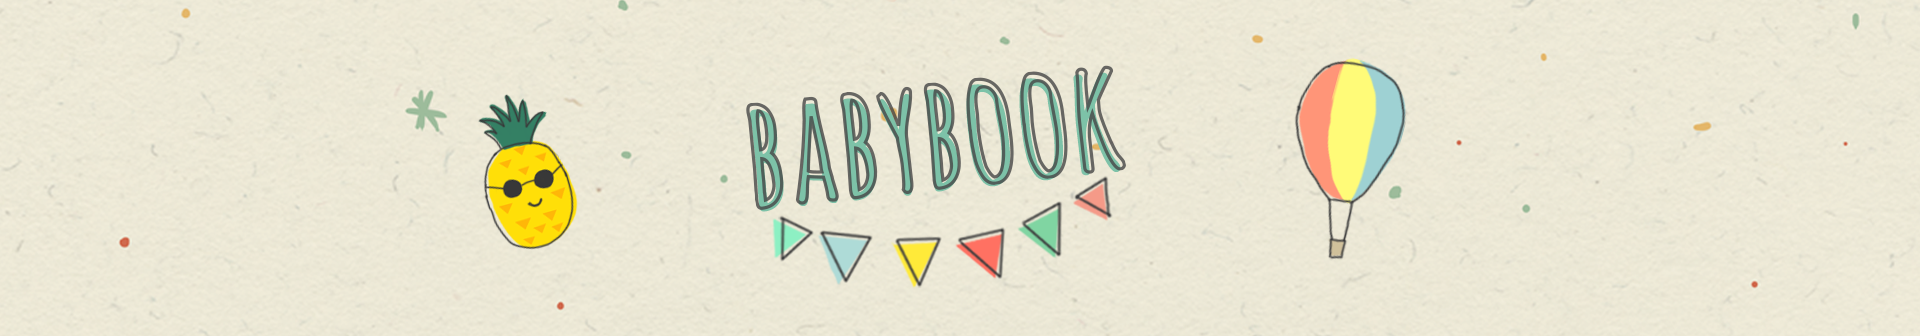 Cover babybook